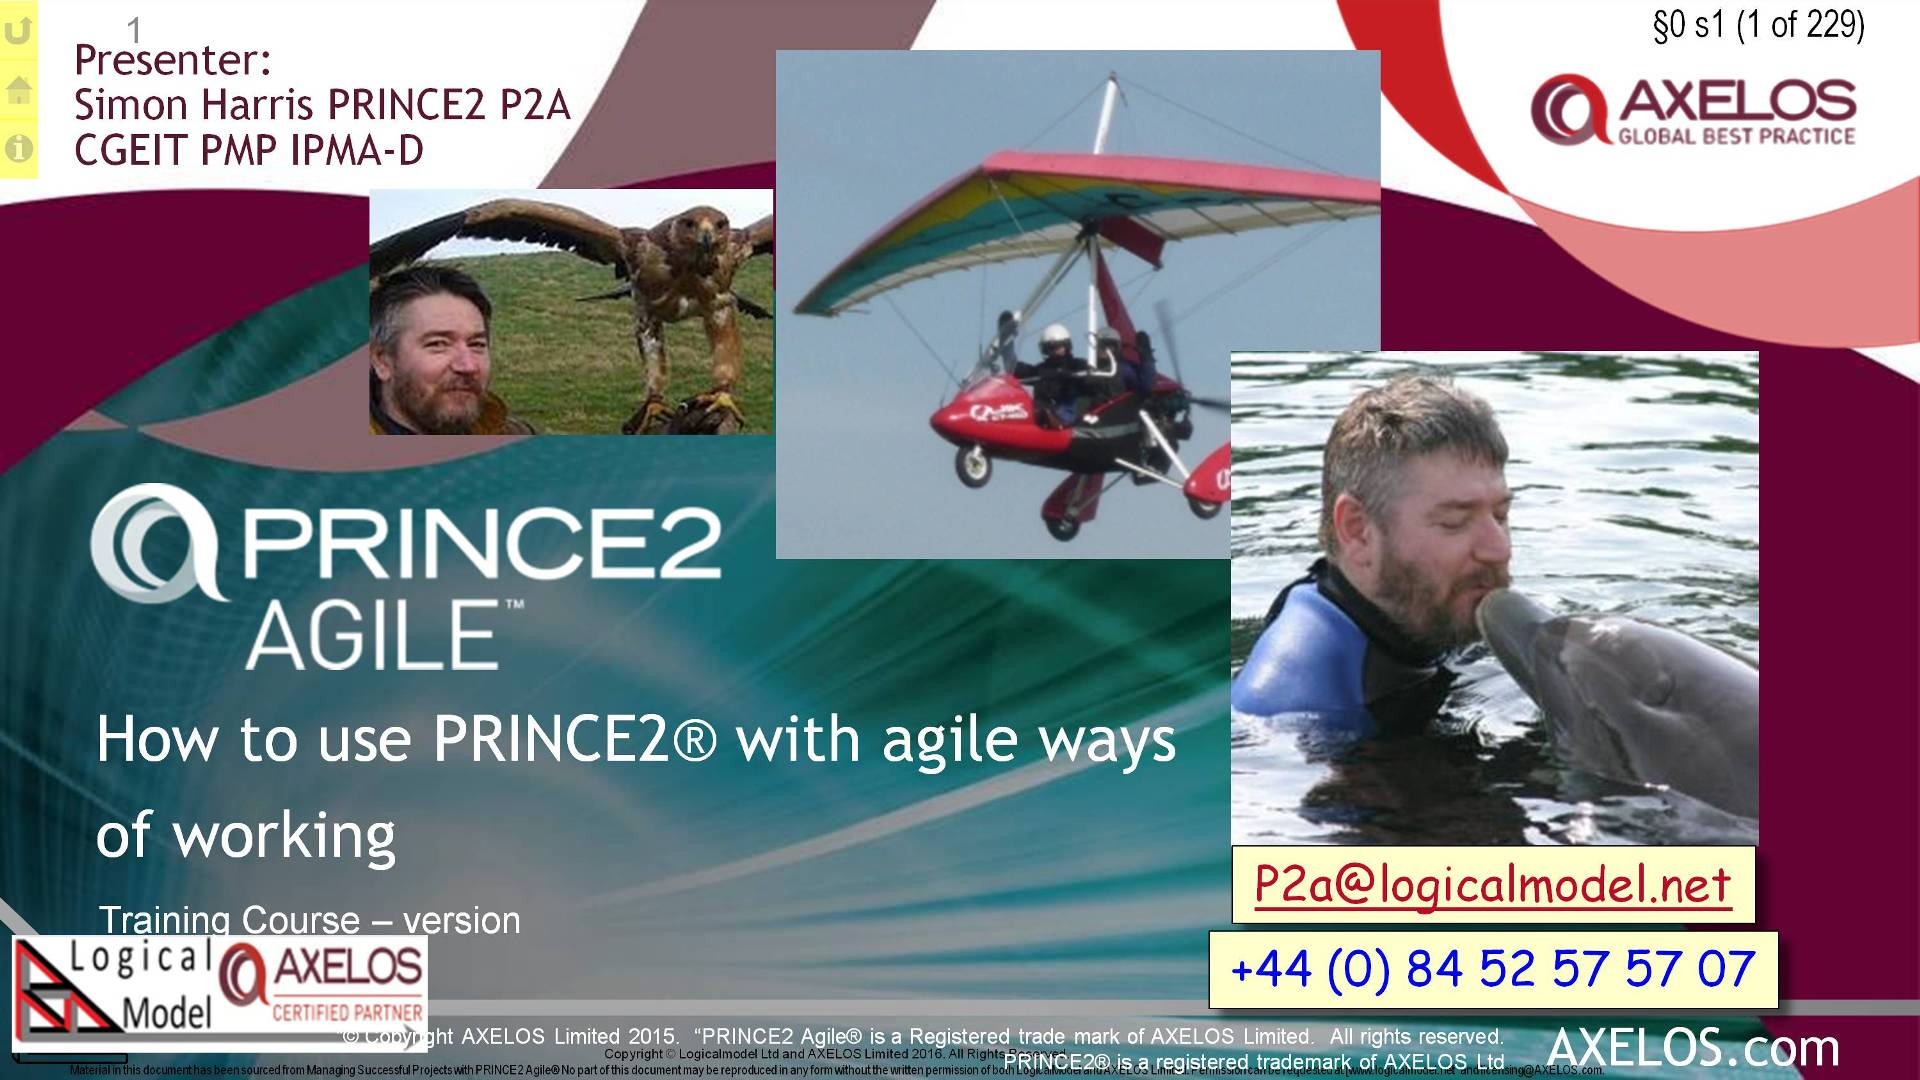 §0 s1 = Presenter: Simon Harris PRINCE2 P2A CGEIT PMP IPMA-D